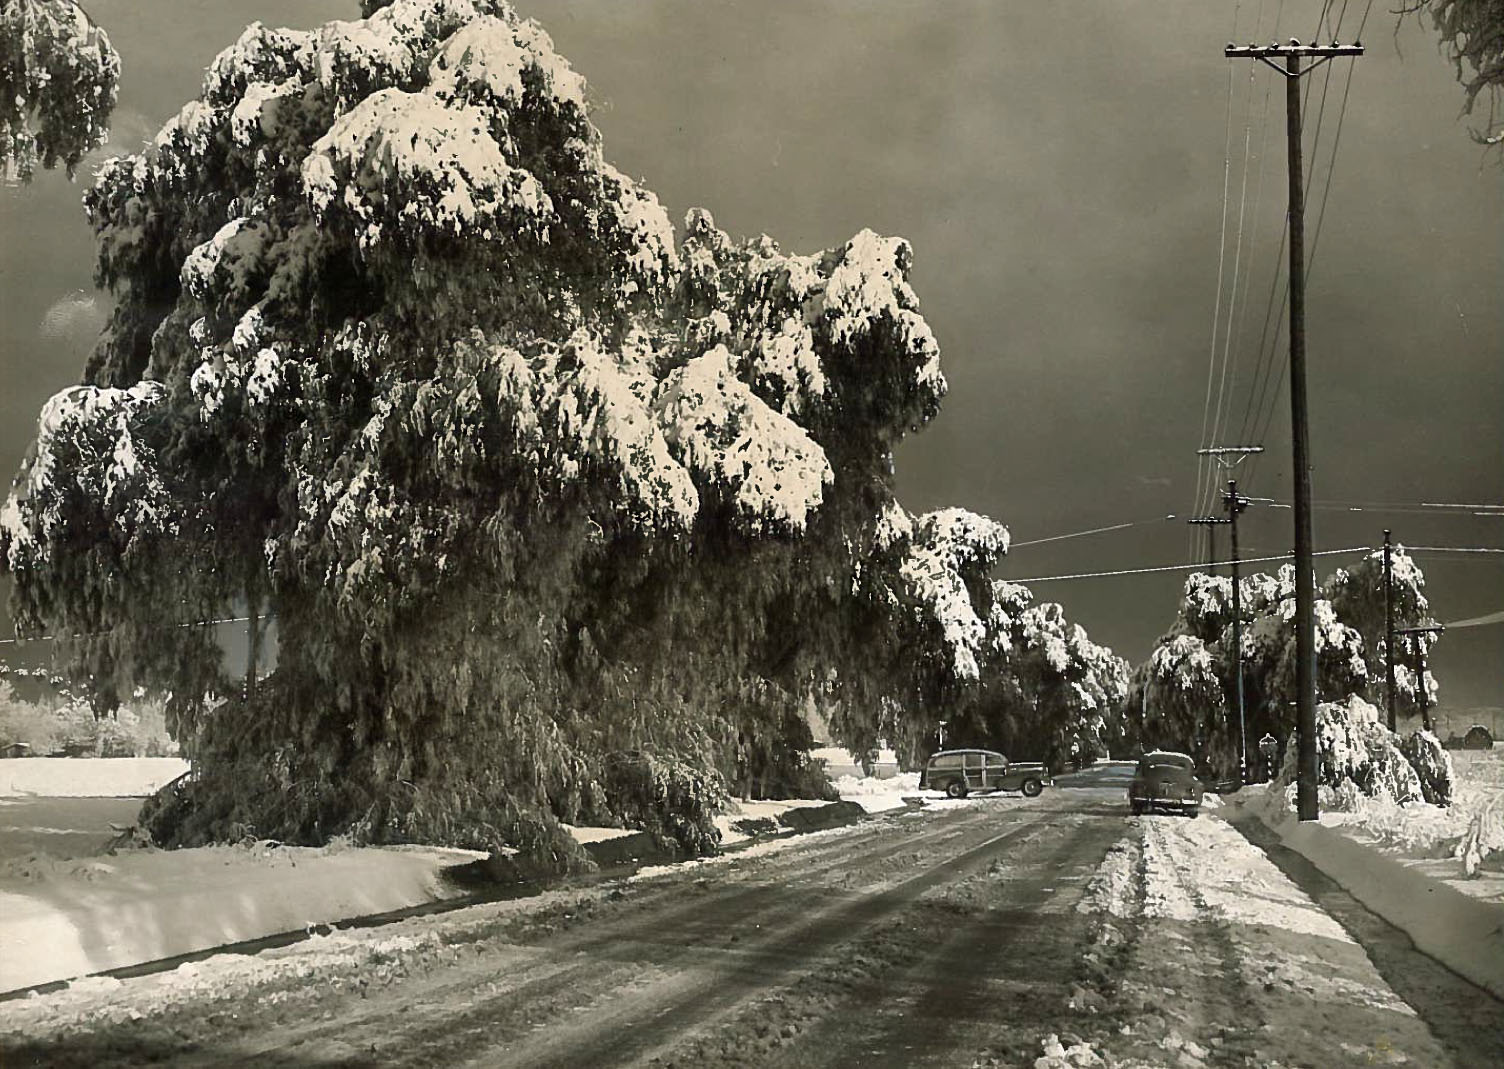 A wintry scene in Canoga Park on Jan. 13, 1949